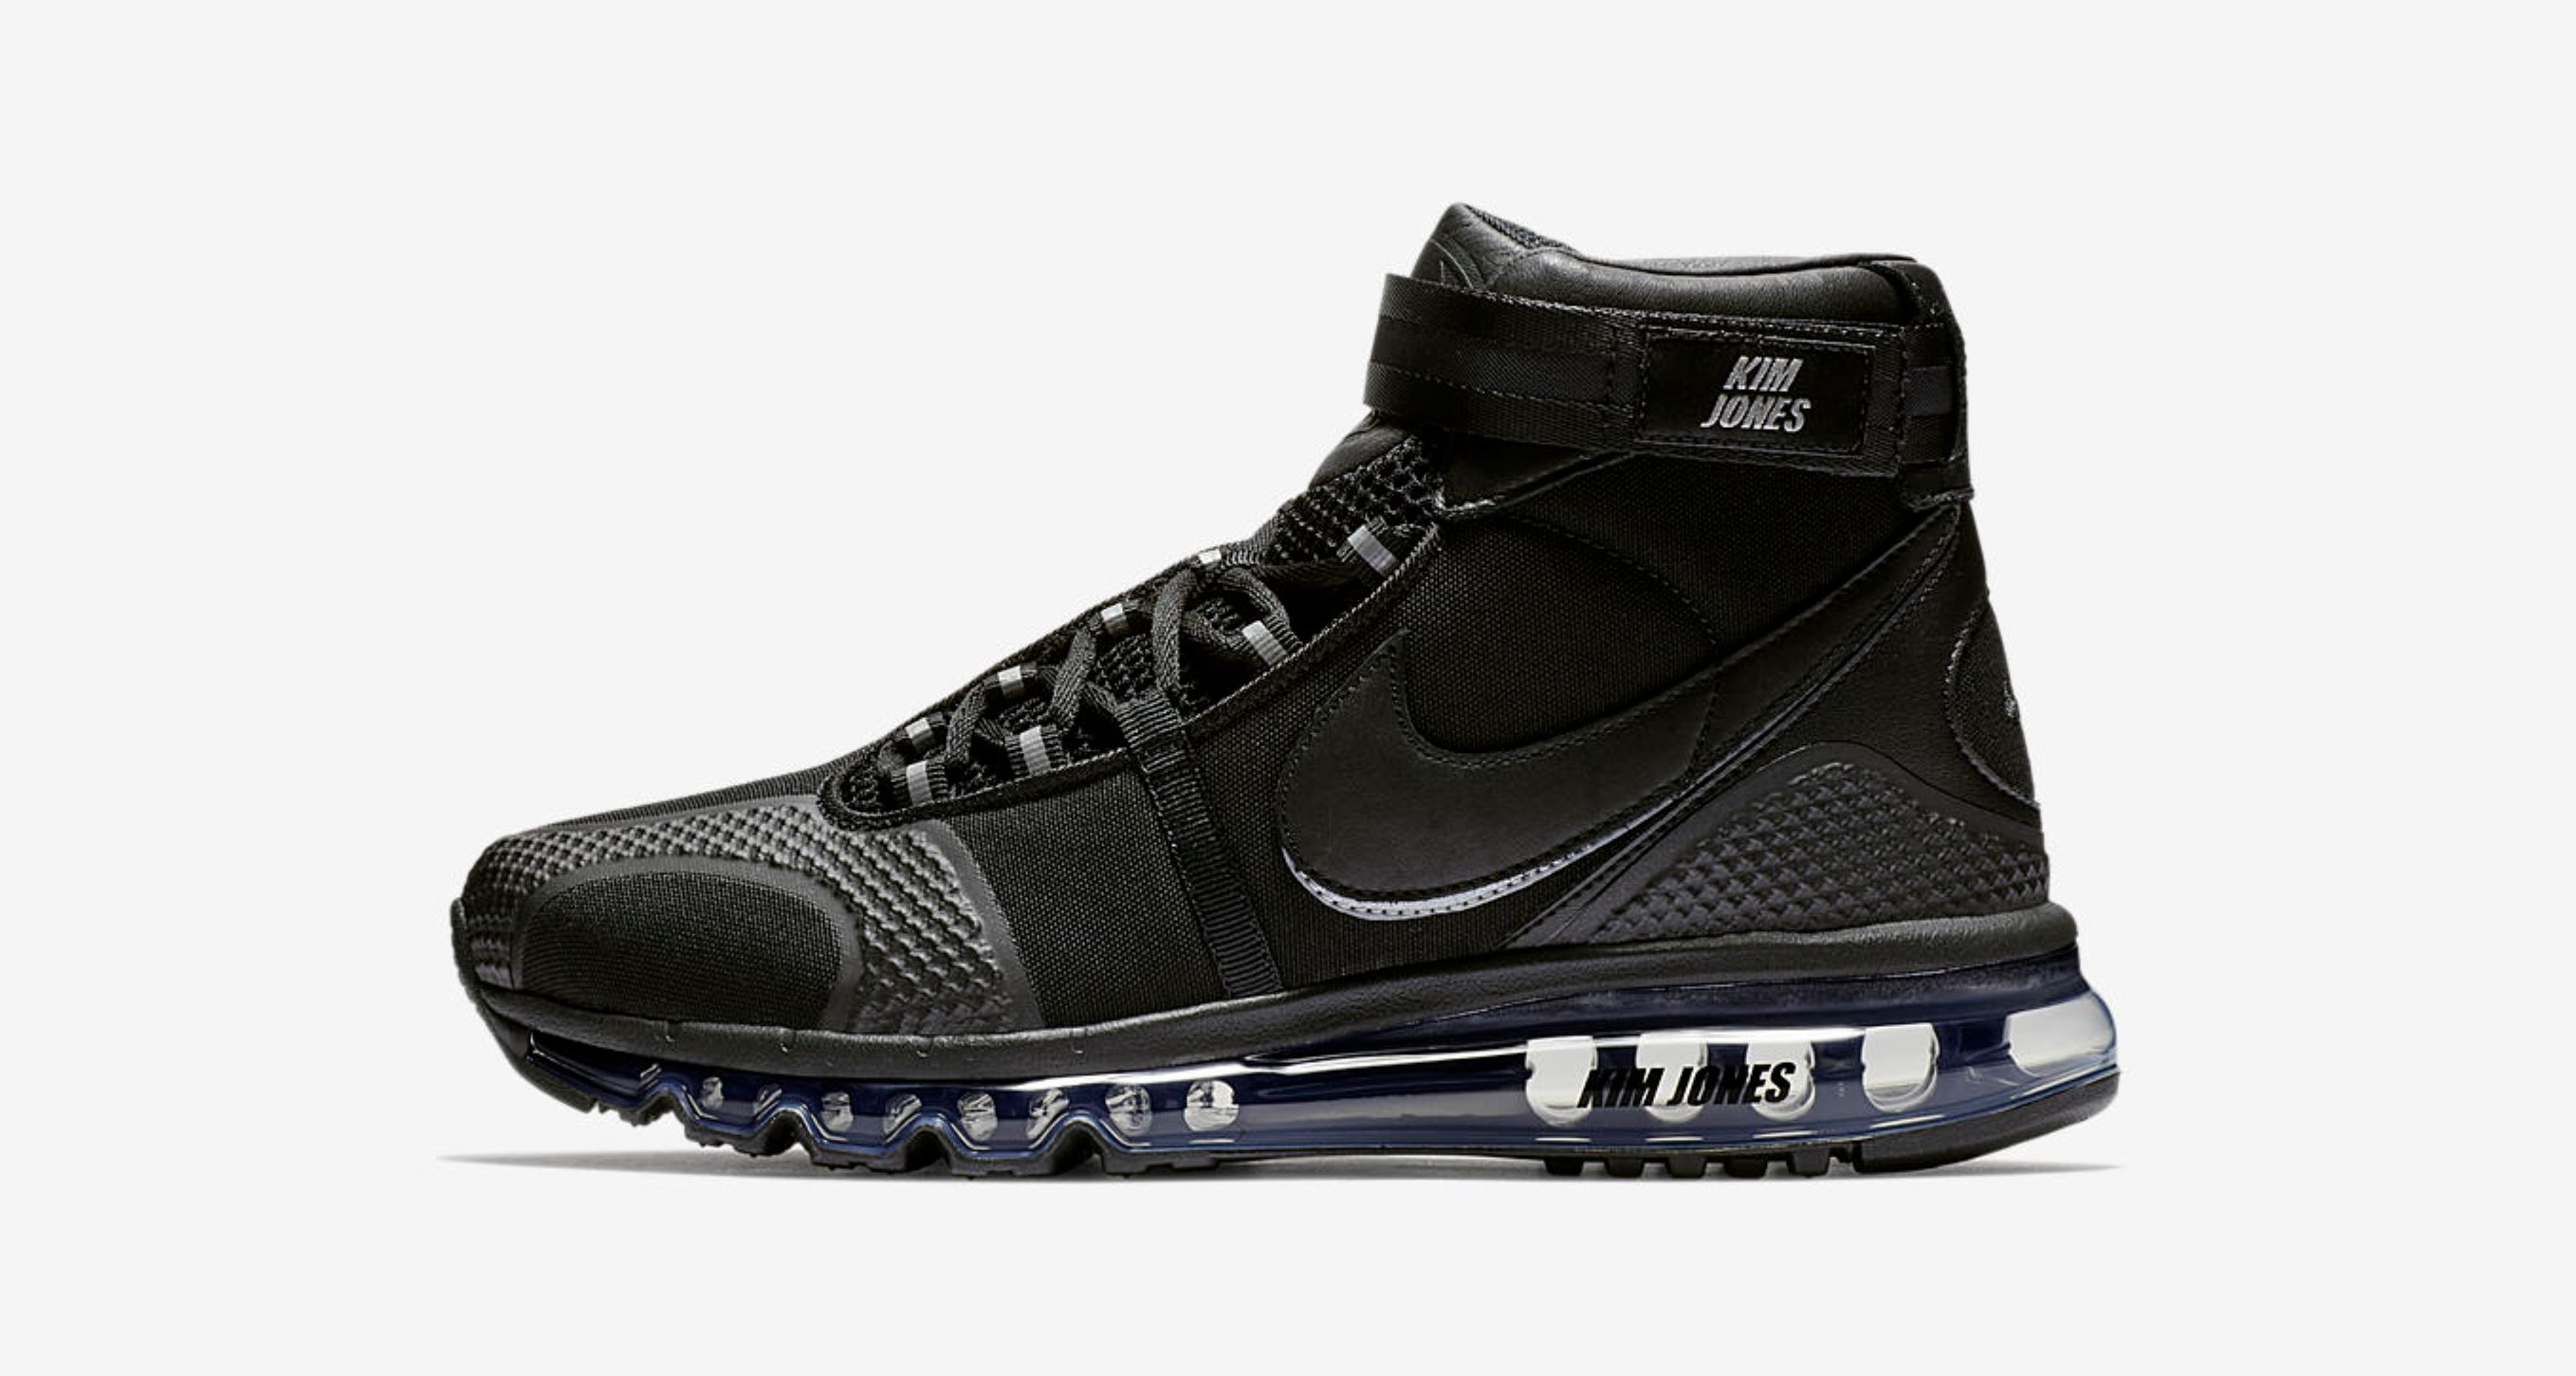 kim jones air max 360 high KJ black release date